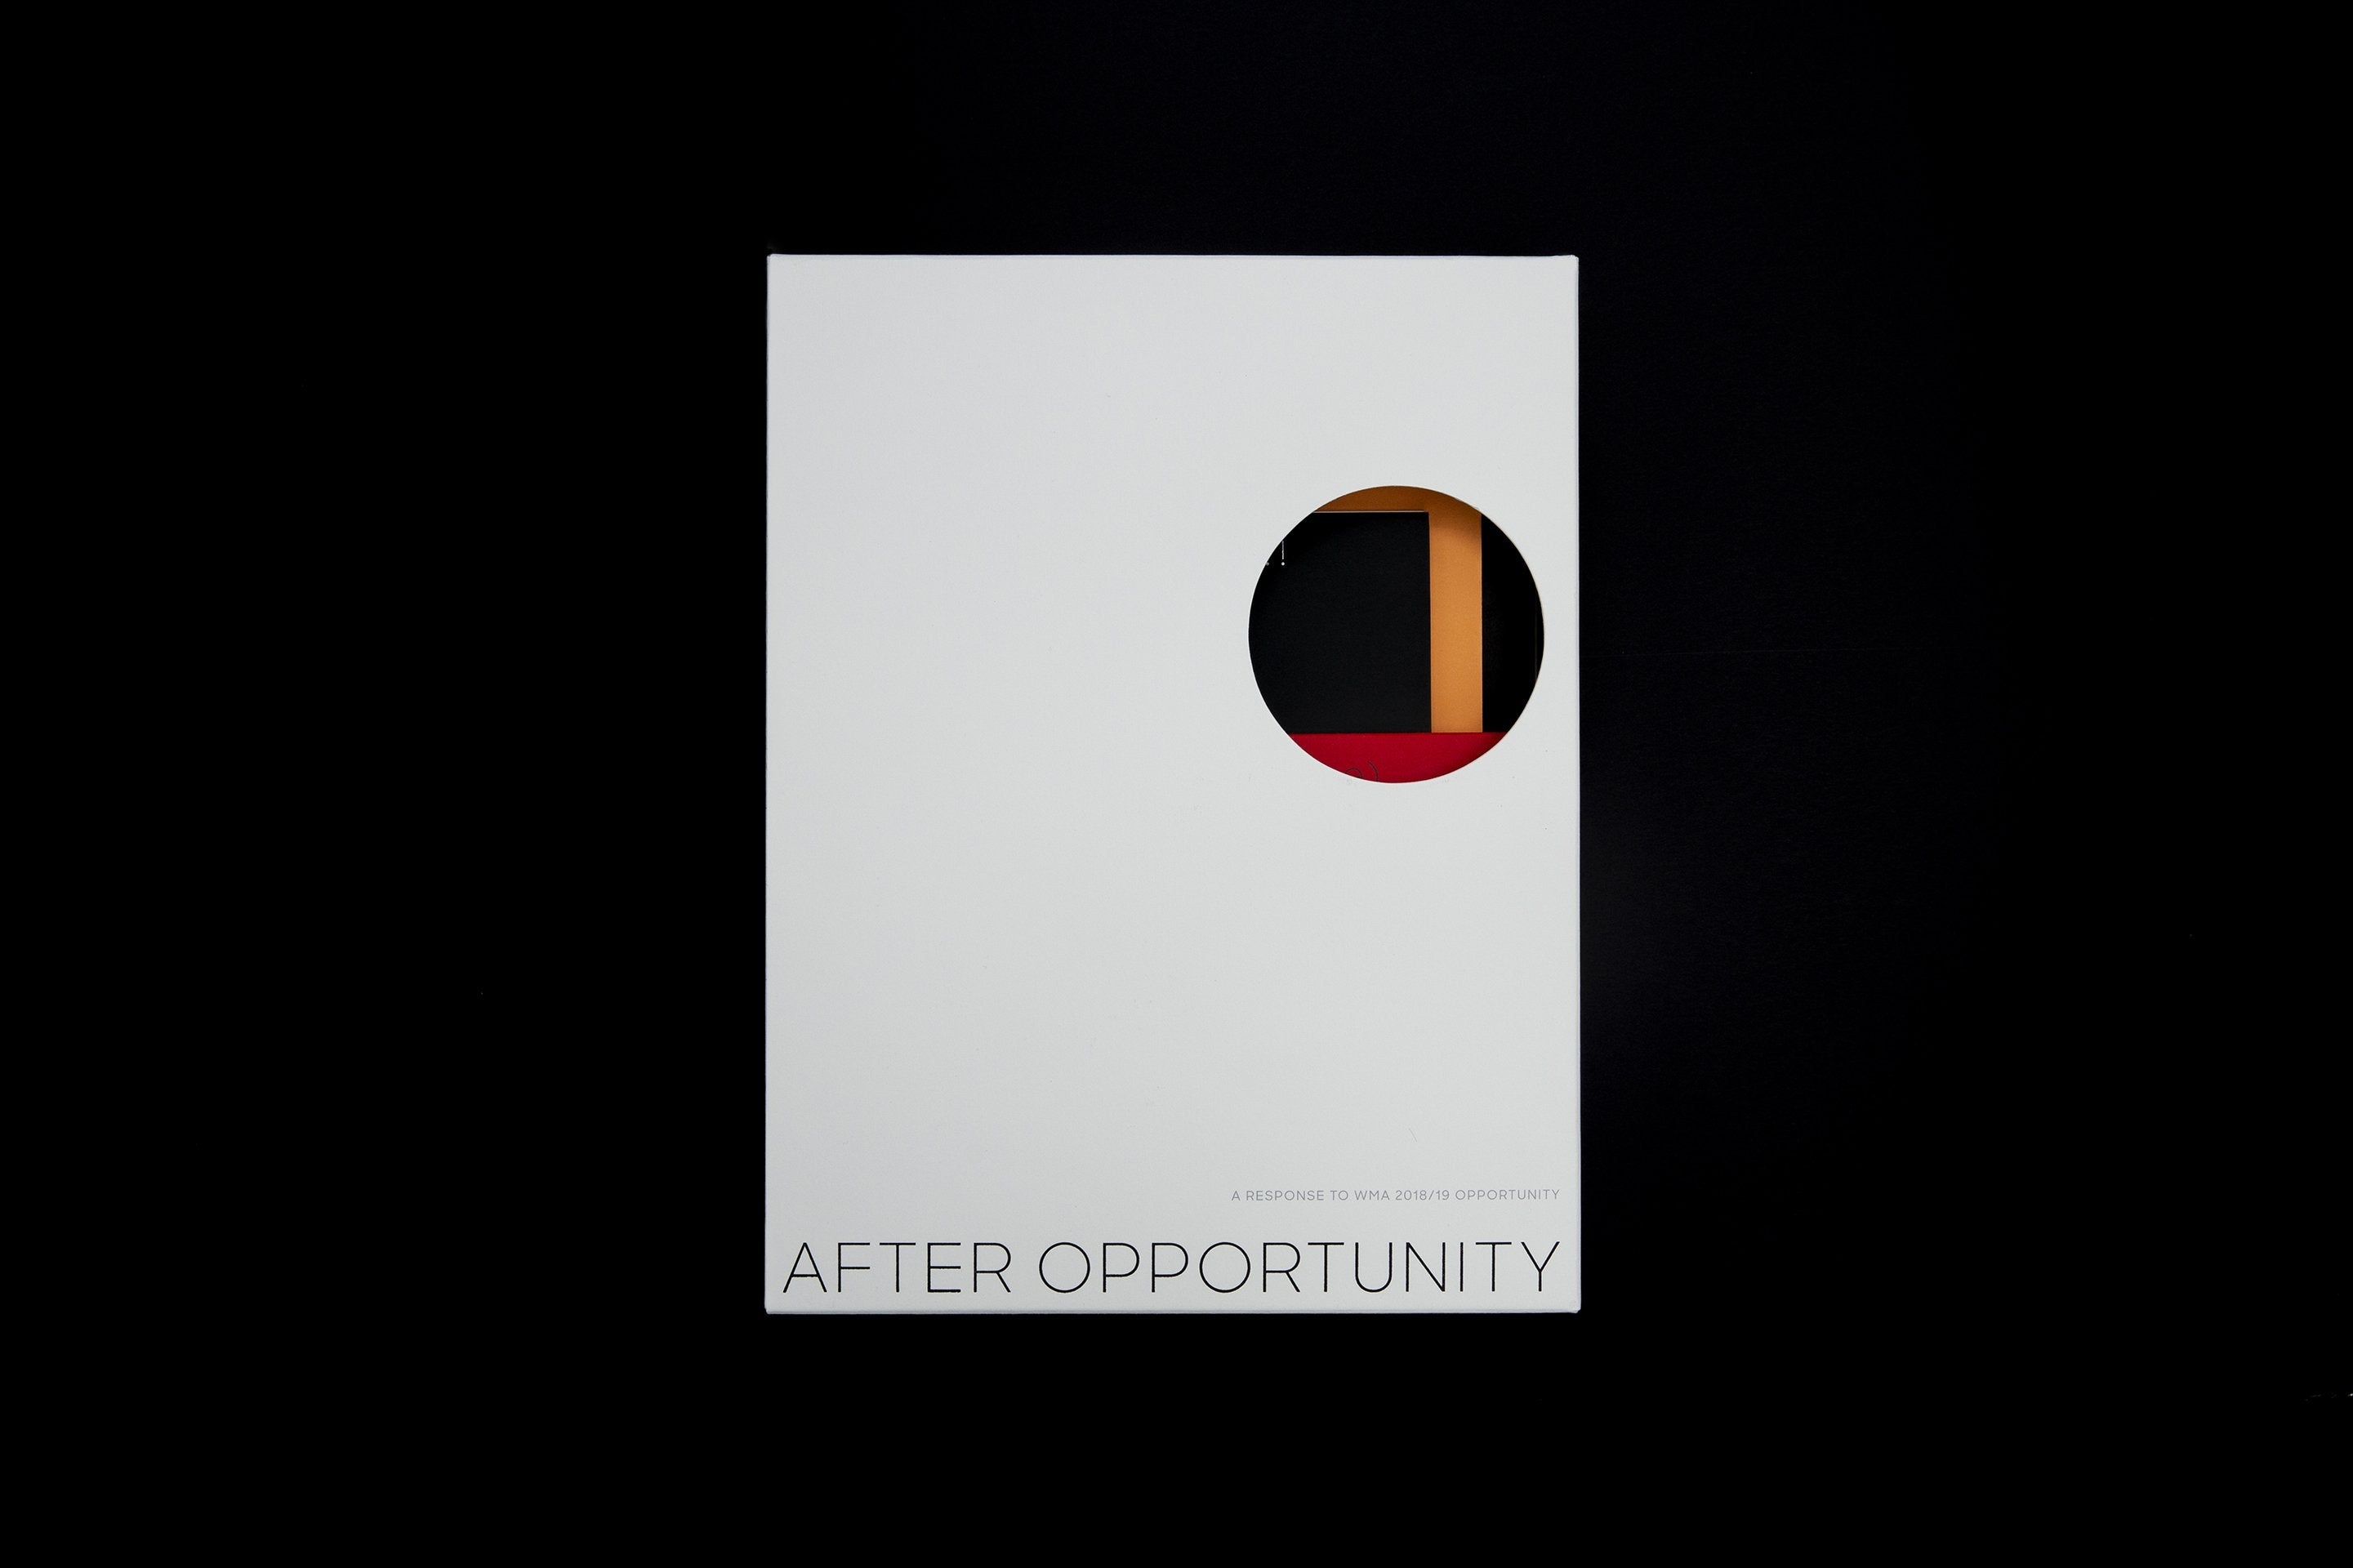 After Opportunity 機遇之後